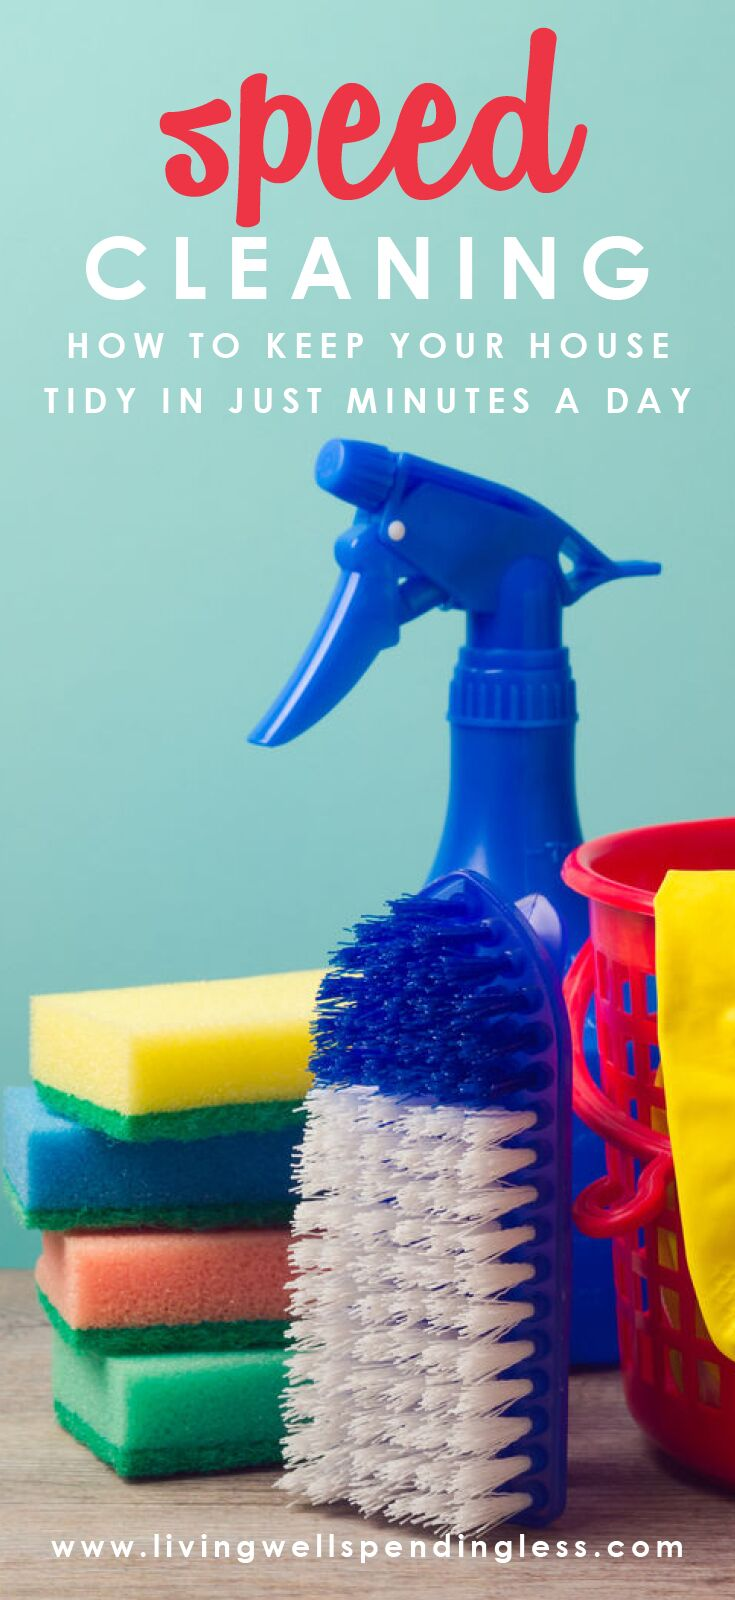 Speed Cleaning: How to Keep Your House Tidy in Just Minutes a Day!